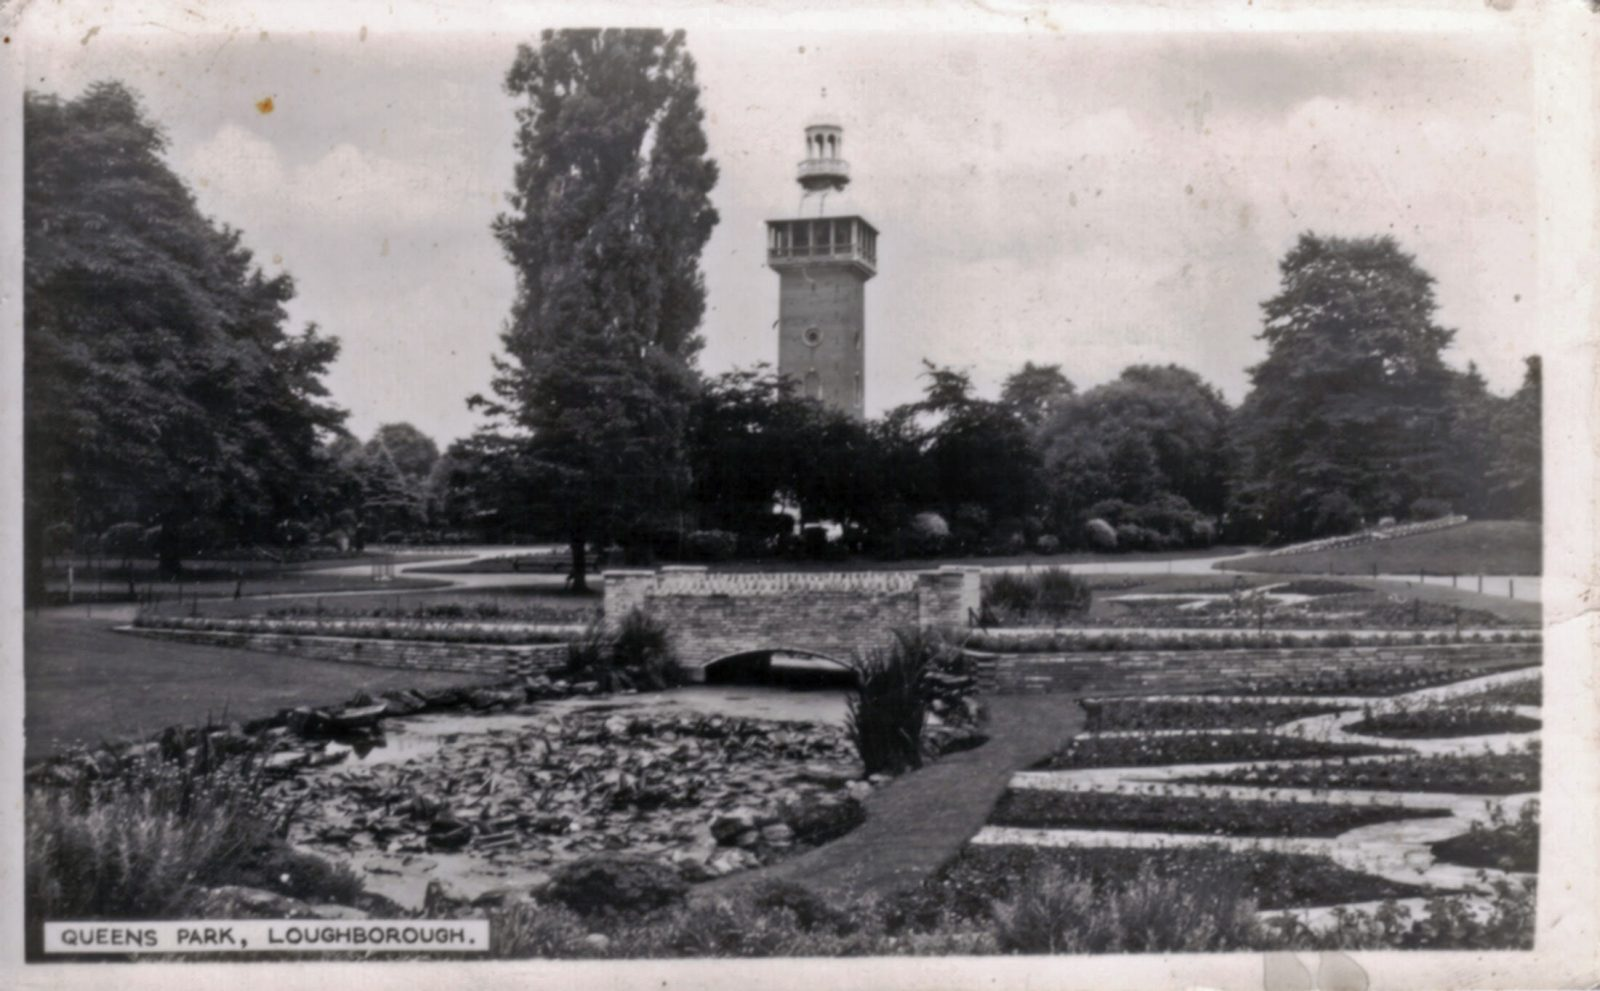 Queens Park, Loughborough. 1941-1960: View across water garden to Carillon Tower. Franked 1954 (File:1134)